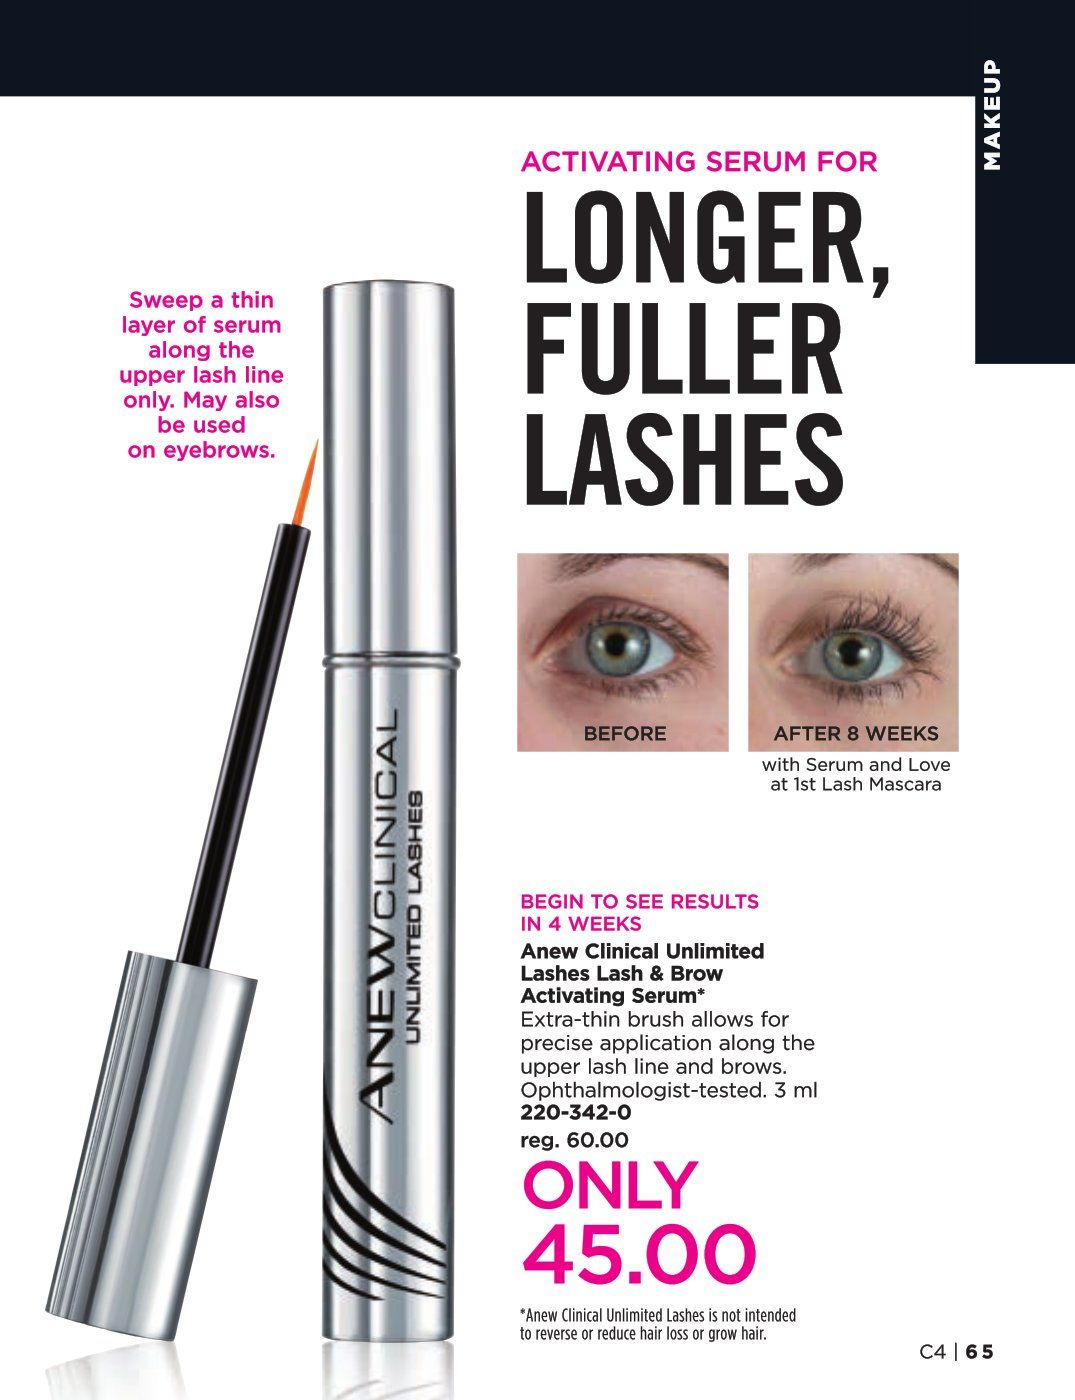 8ac068c2077 Anew Clinical Unlimited Lashes Lash and Brow Activating Serum. Extra thin  brush allows for precise application along the upper lash line and brows.